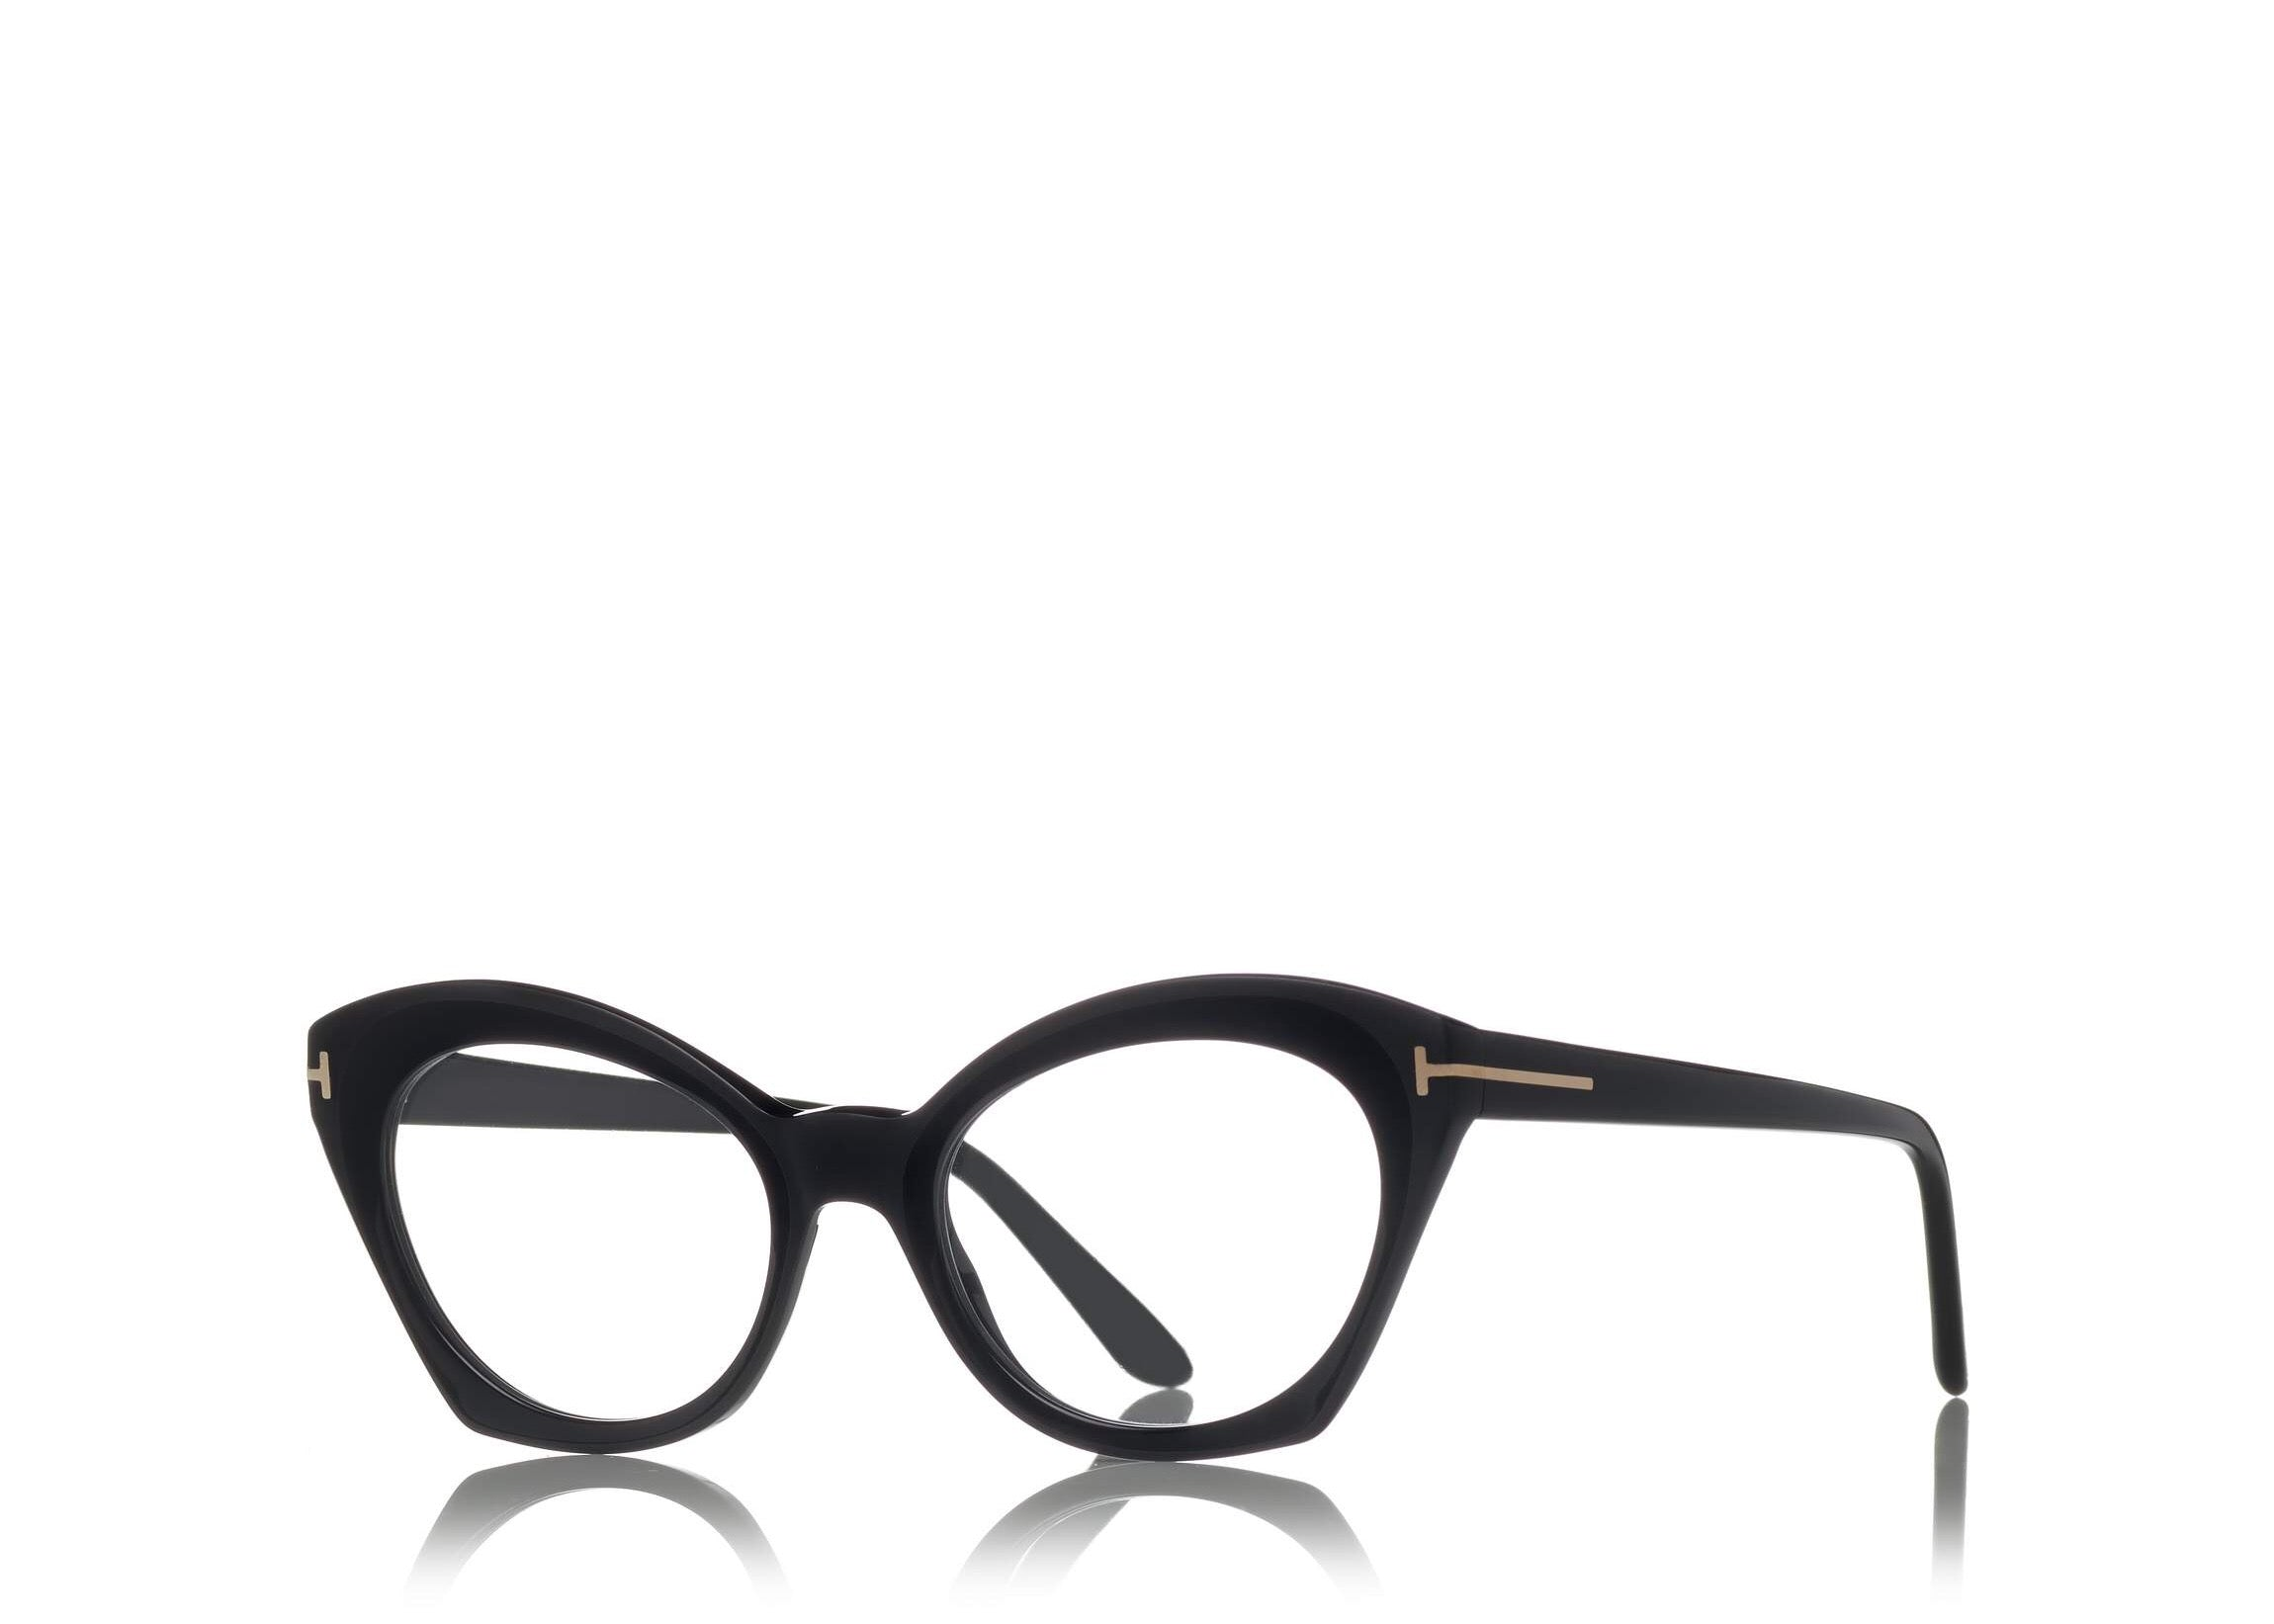 59483b77f1a ... 6468985963 TOM FORD FT 5456 BLACK CAT-EYE FRAME OPTICAL GLASSES